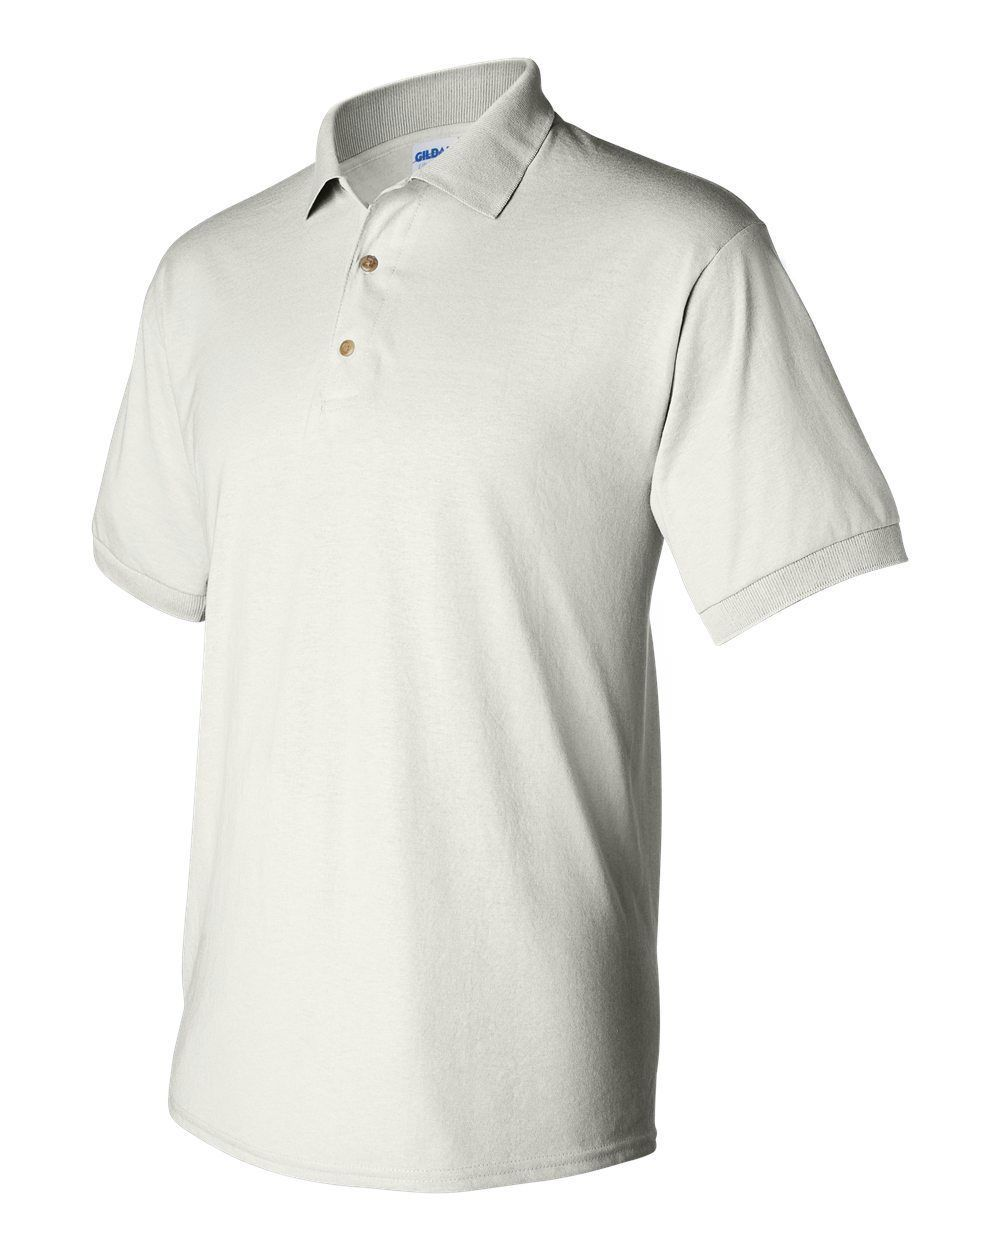 12 Blank Gildan DryBlend White Jersey Polo 8800 Bulk Lot Wholesale XXL-5XL G880